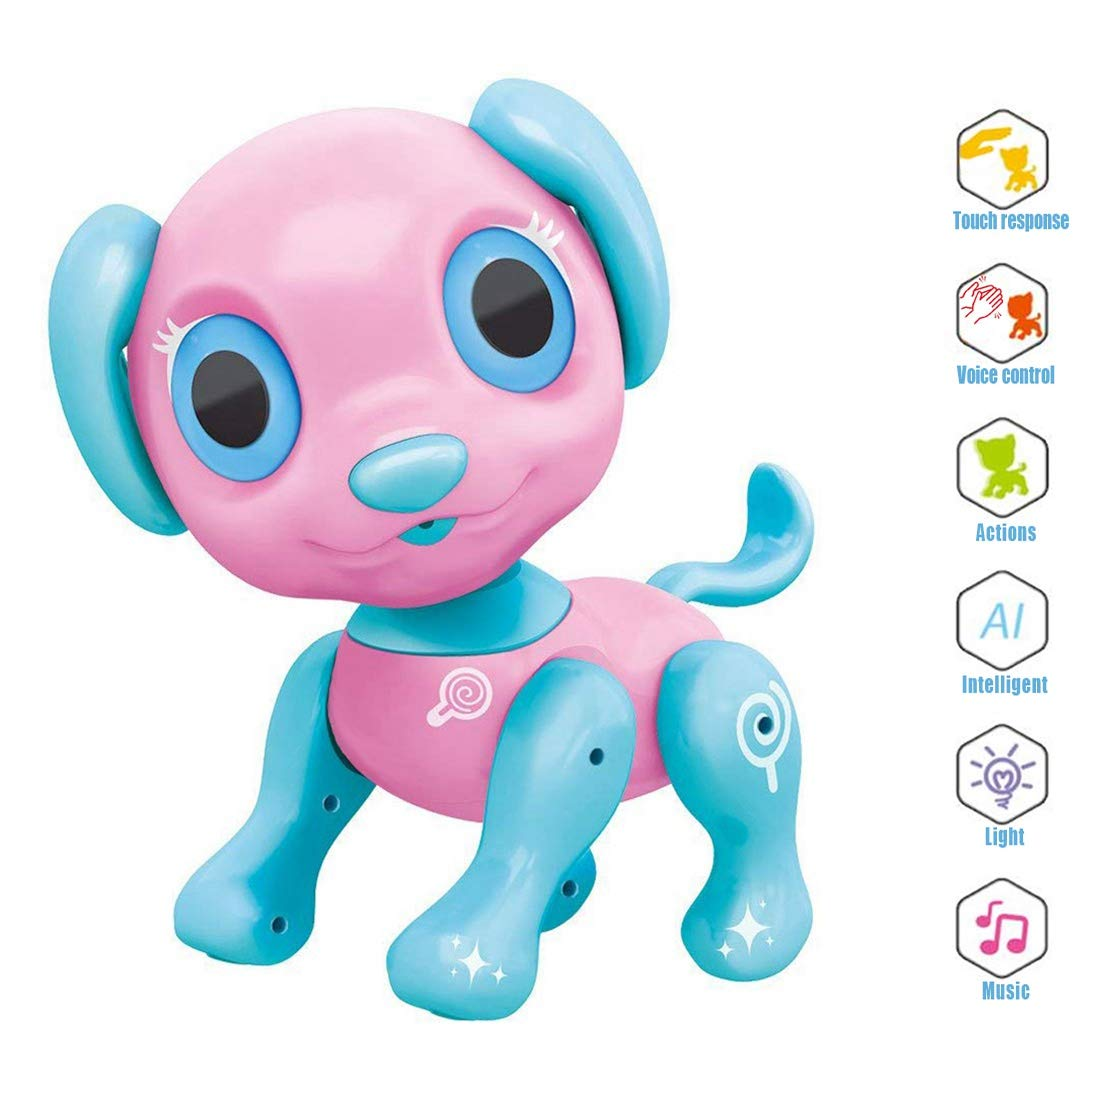 Electronic Pet Toy, Smart Robot Dog ~ Interactive Puppy Toys for Age 3 4 5 6 7 8 Year Old Girls, Gifts Idea for Kids ● Emotional Interaction (Pink) by amdohai (Image #1)